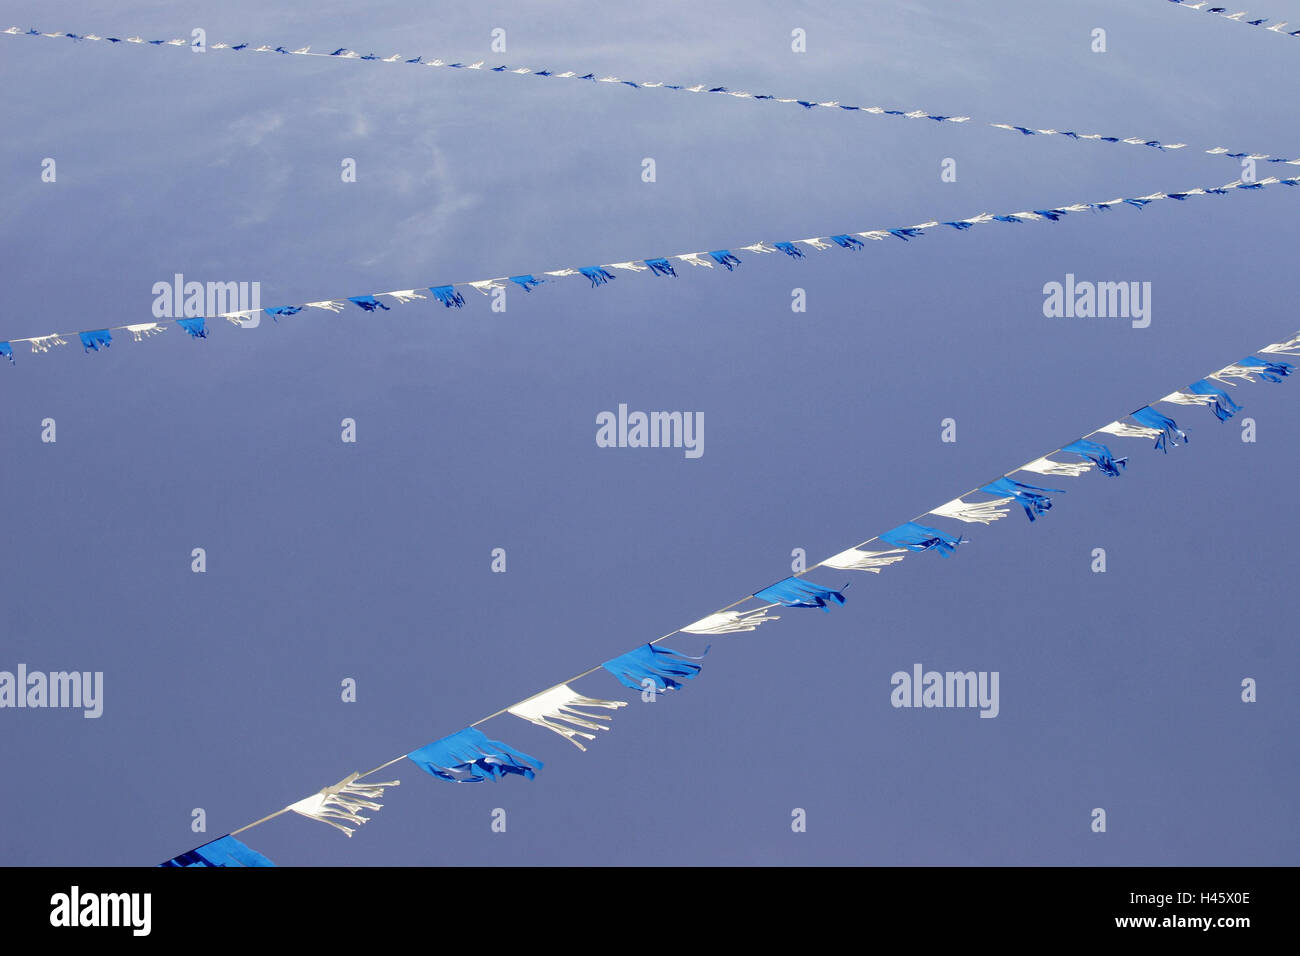 Heaven, garlands, pendants, blue, white, cloudless, strings, linen, decoration, tensely, ornamentally, catenas, - Stock Image